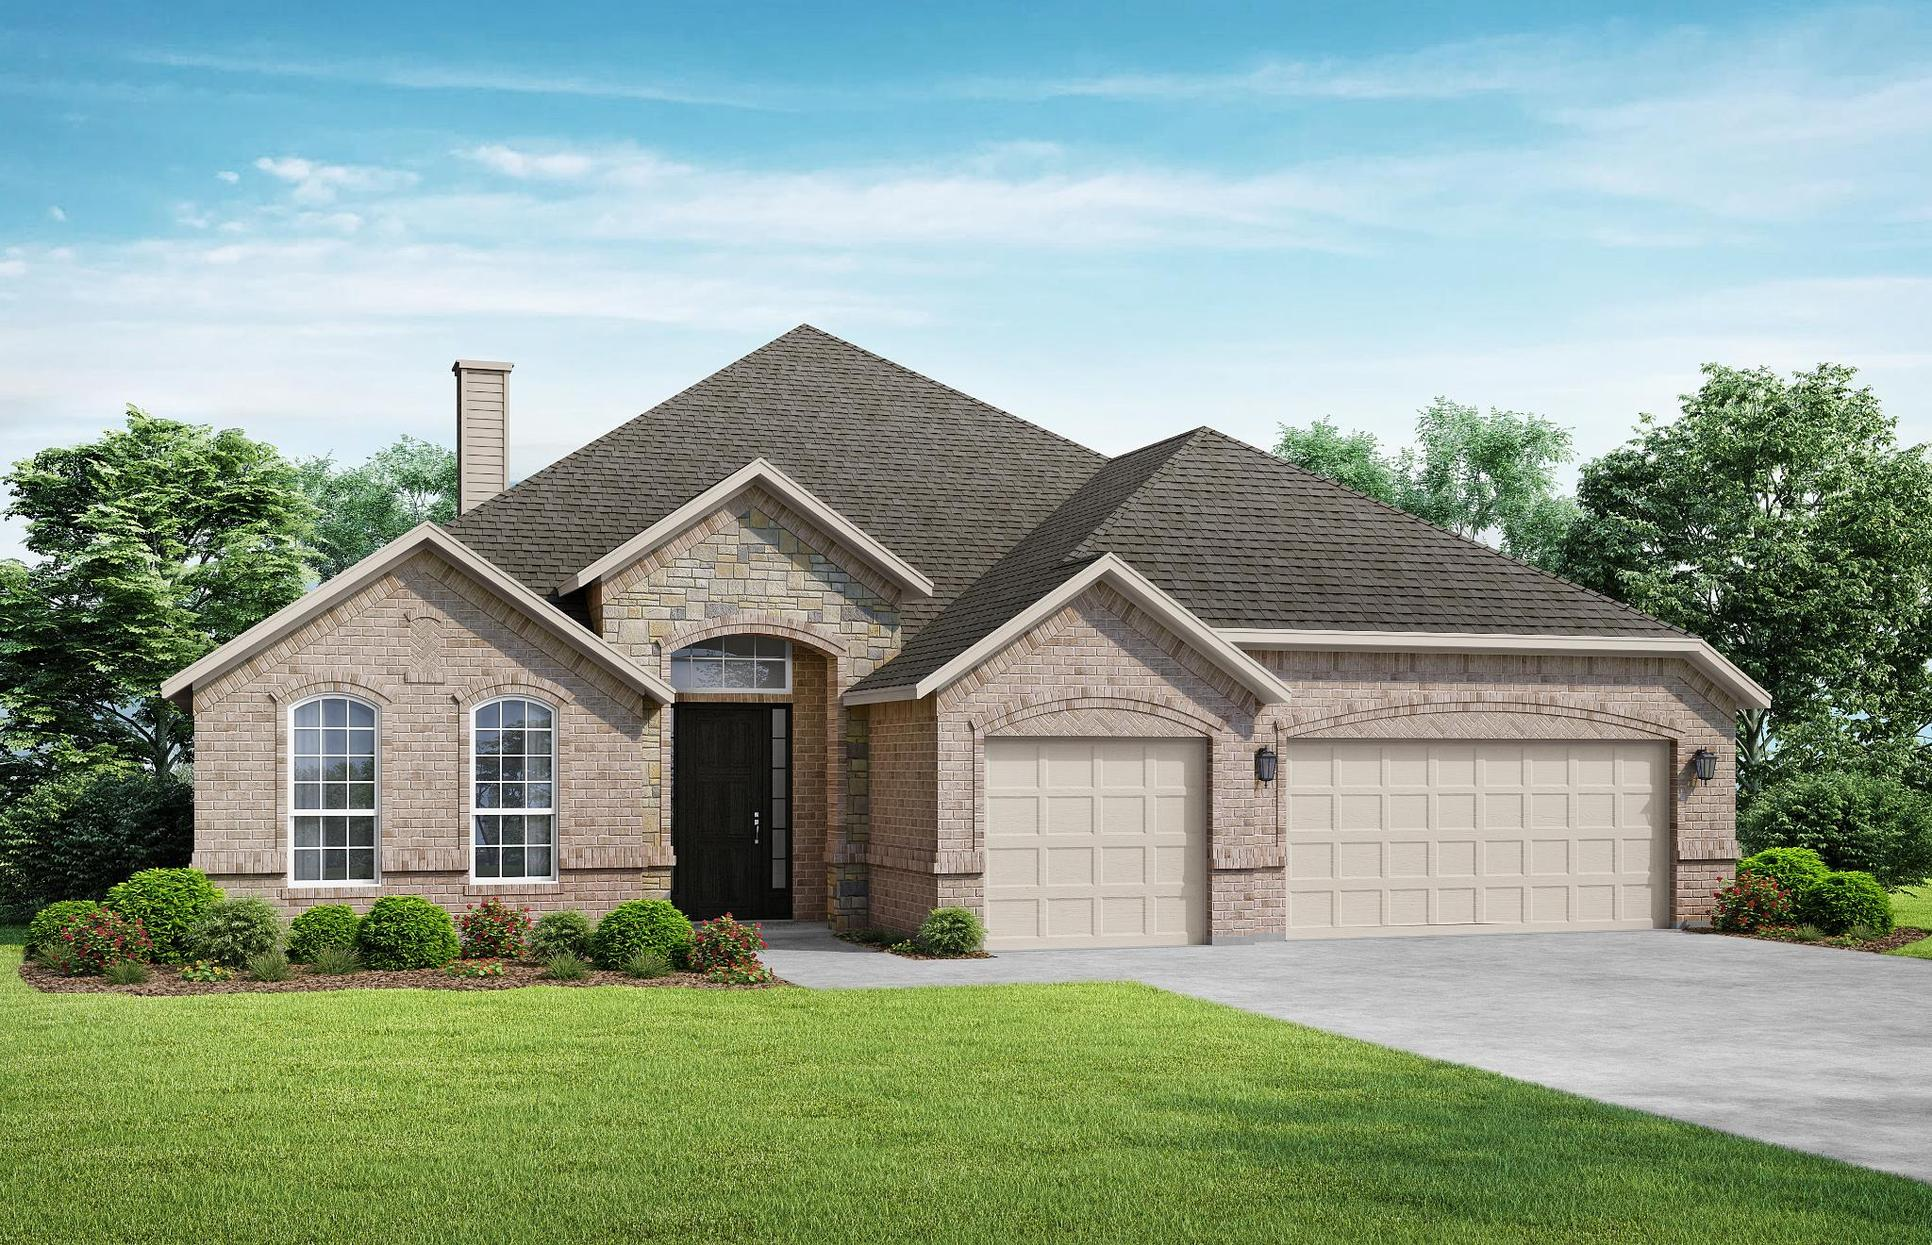 Garner - Elevation A. Images are artist renderings and will differ from the actual home built.:The Garner